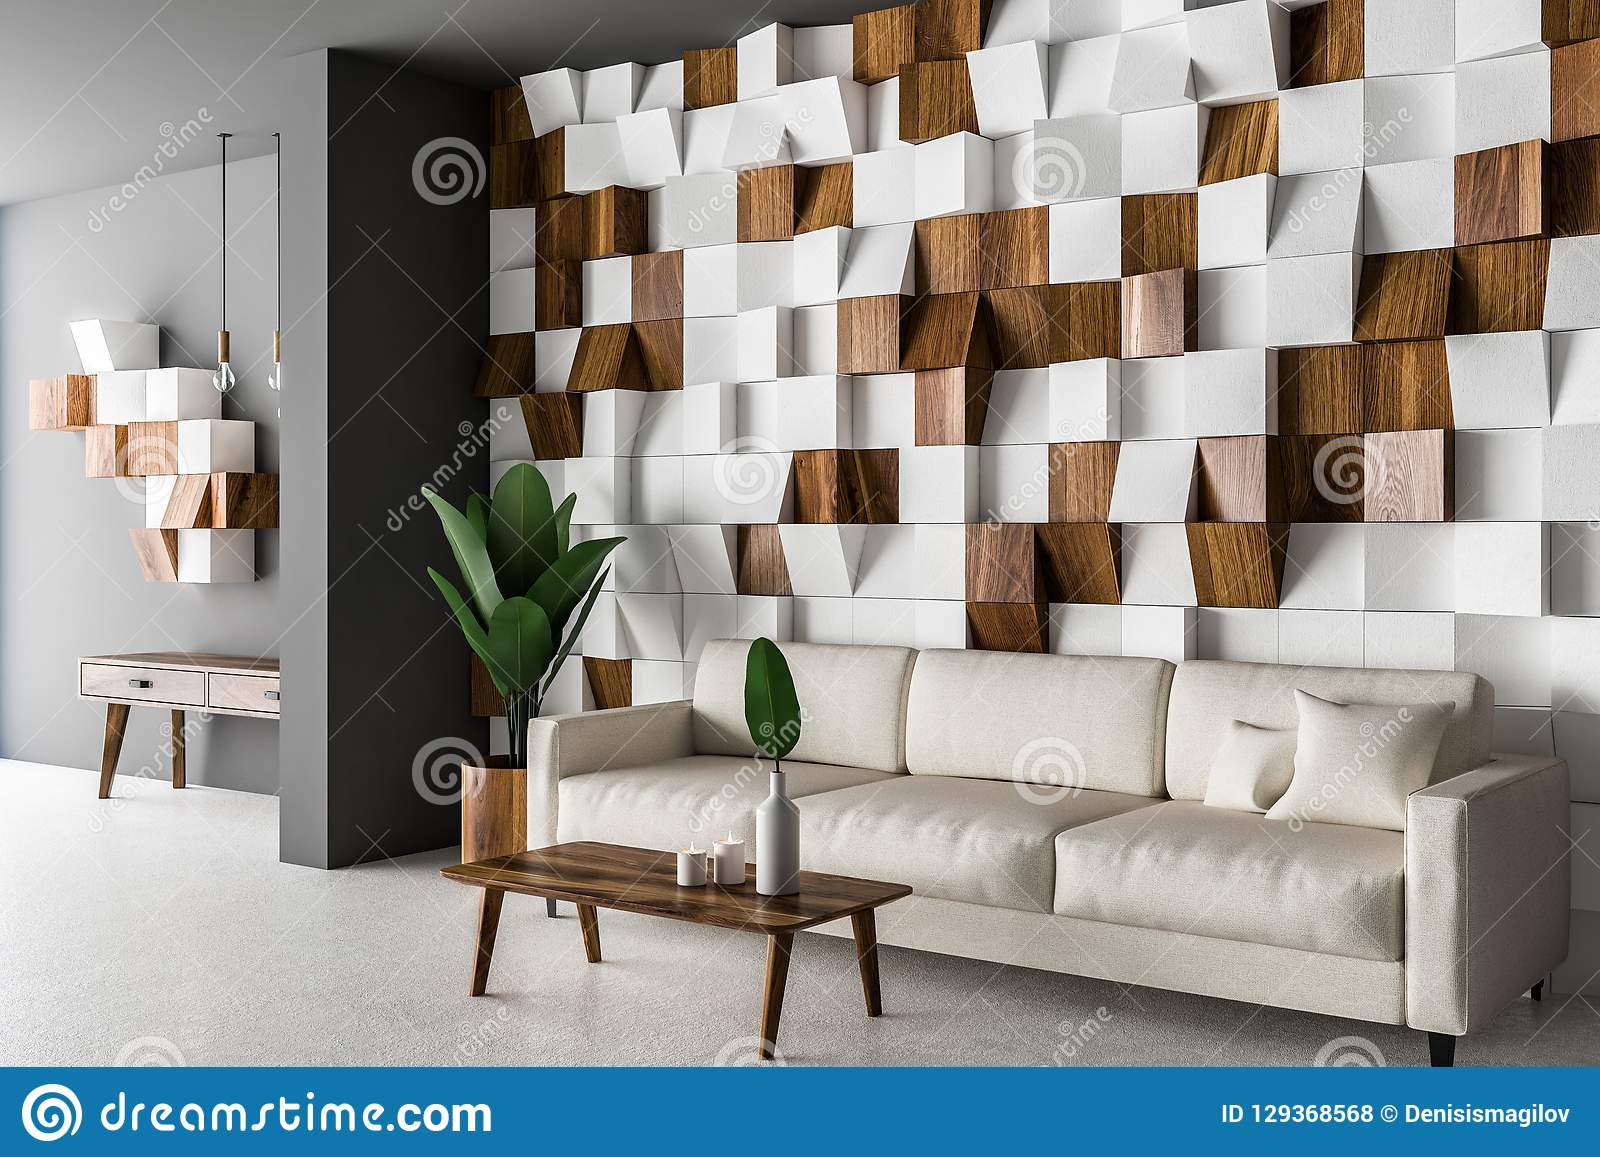 wooden tiles living room corner white sofa tiled wall concrete floor coffee table d rendering image